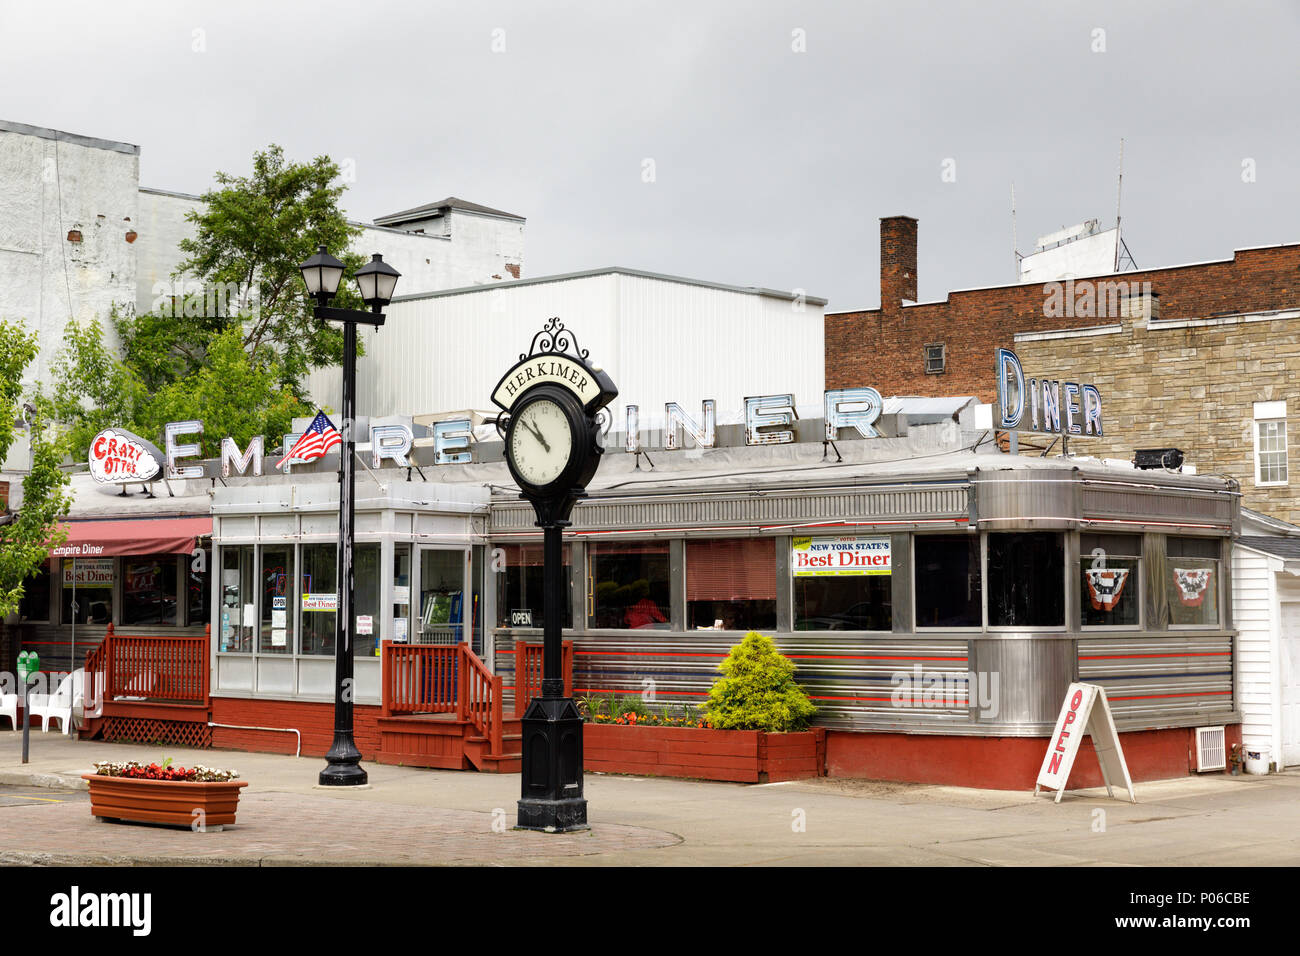 Herkimer, New York, USA – June 5, 2017: Crazy Otto's Empire Diner was voted Best Diner in New York State for 2017. - Stock Image